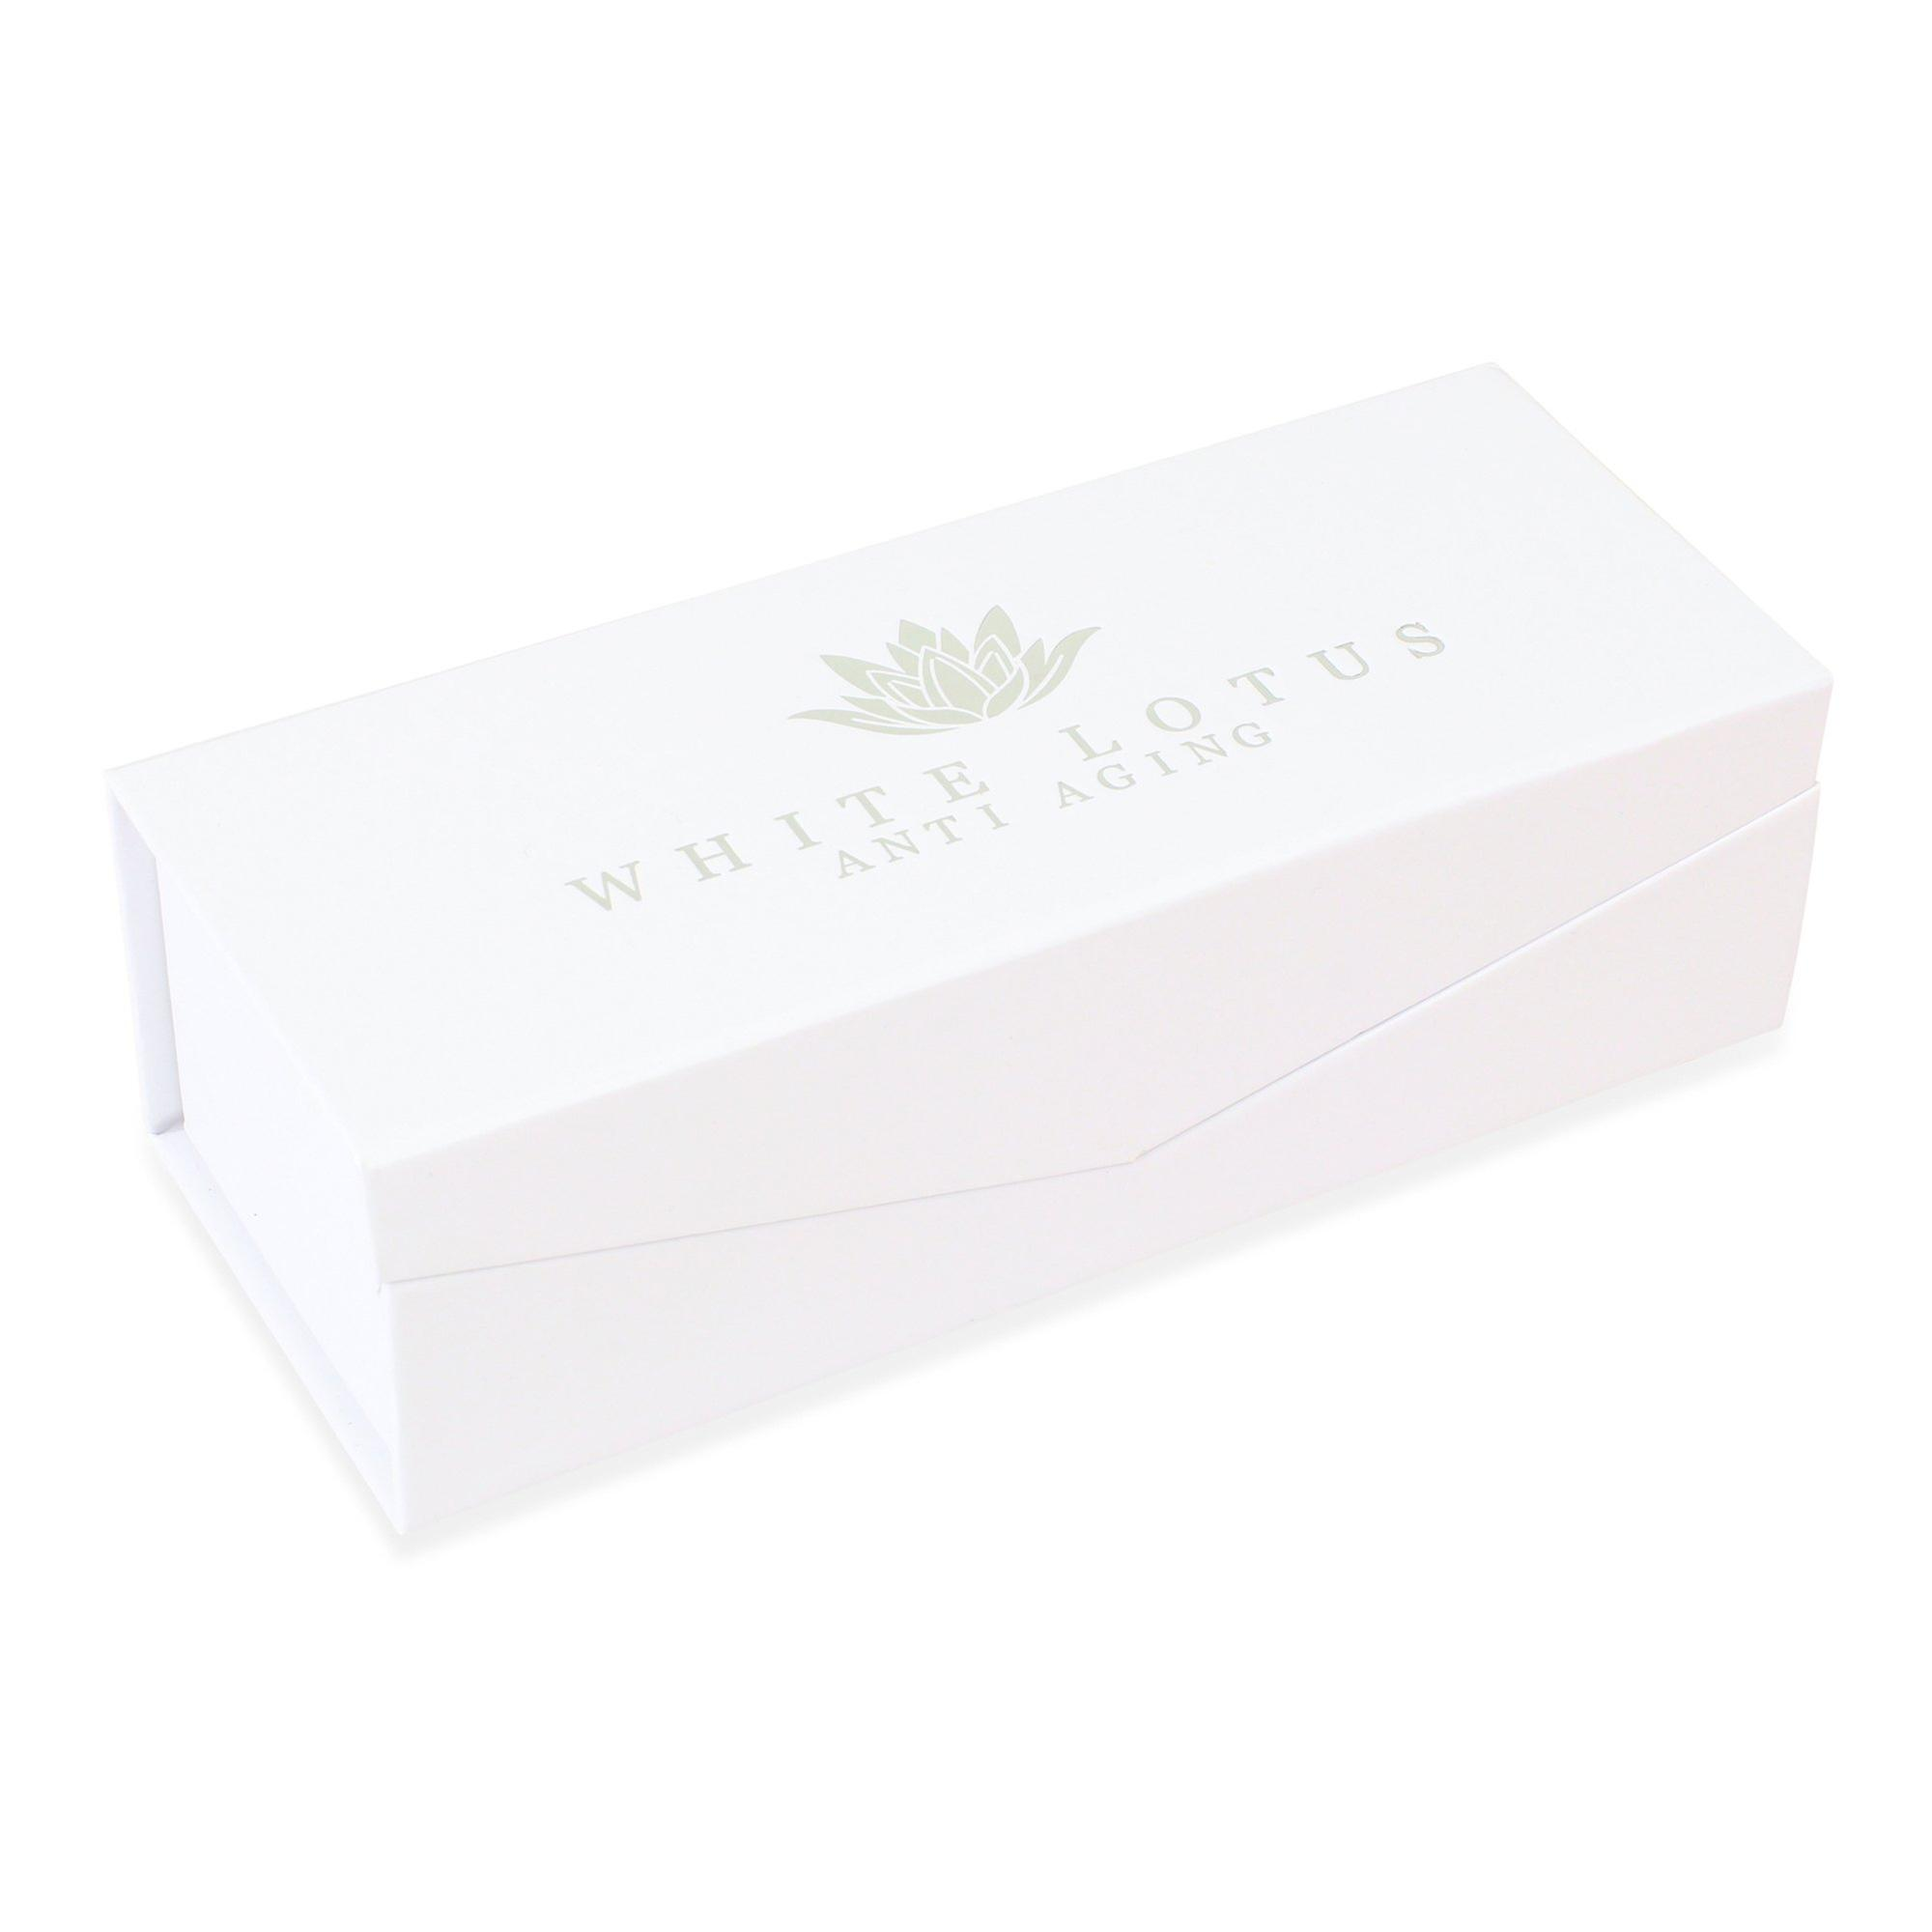 Large rose quartz roller - natural chemical free crystal in a signature silk lined box